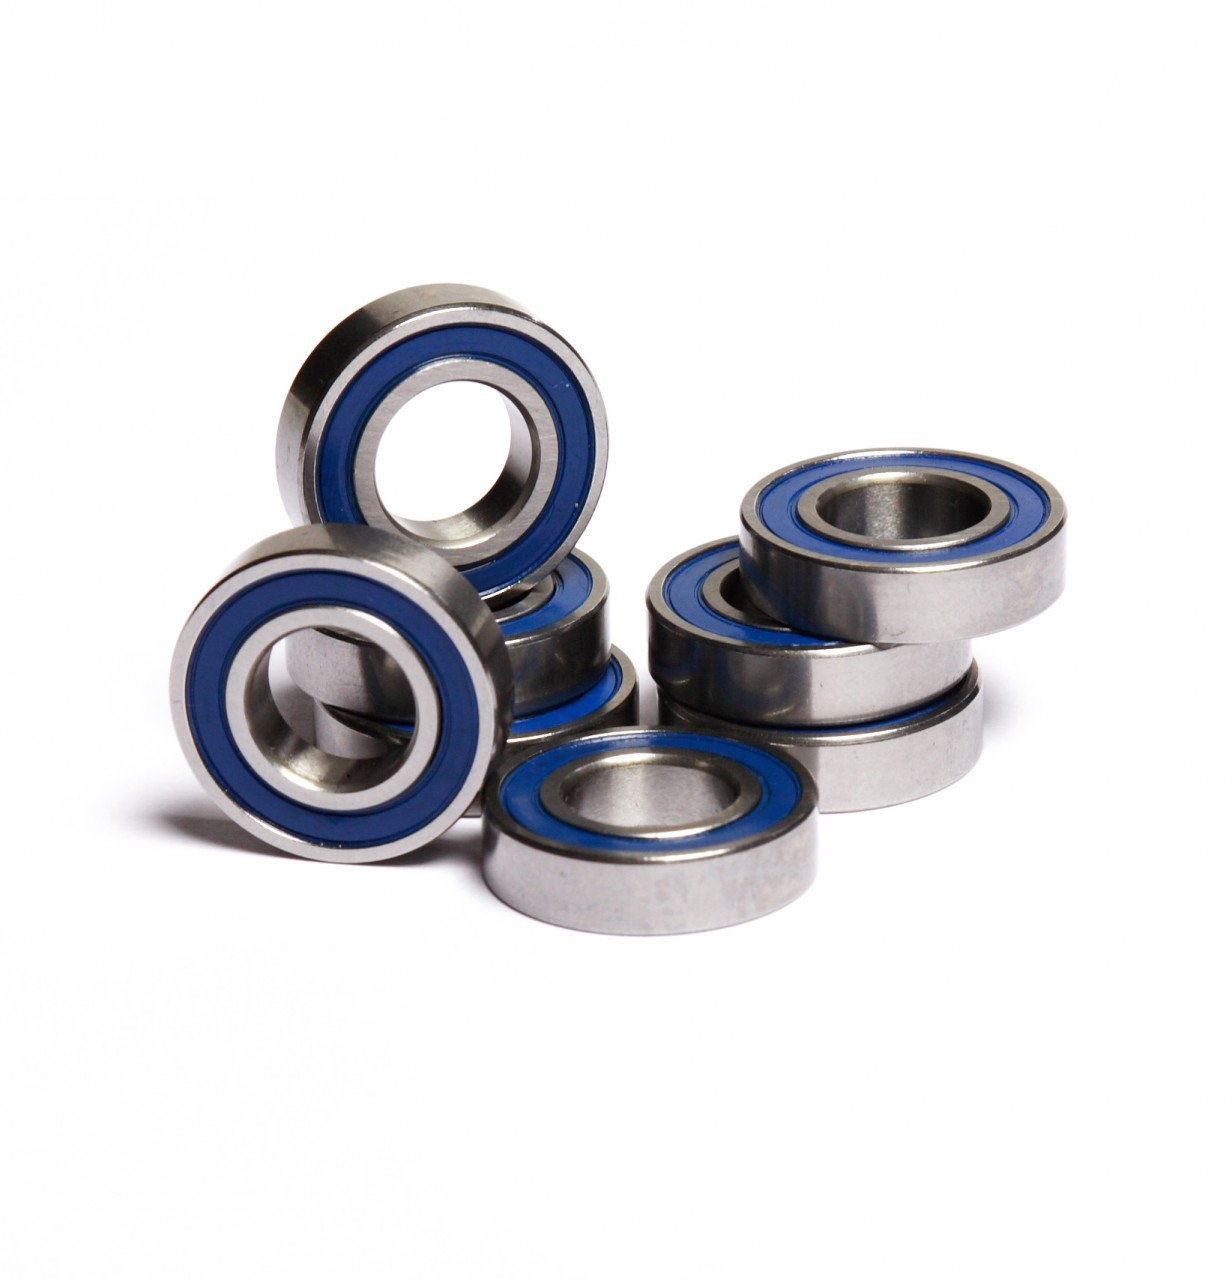 HPI Baja 8 piece wheel bearing kit.  Includes 8 - 12x24x6 blue rubber sealed bearings.